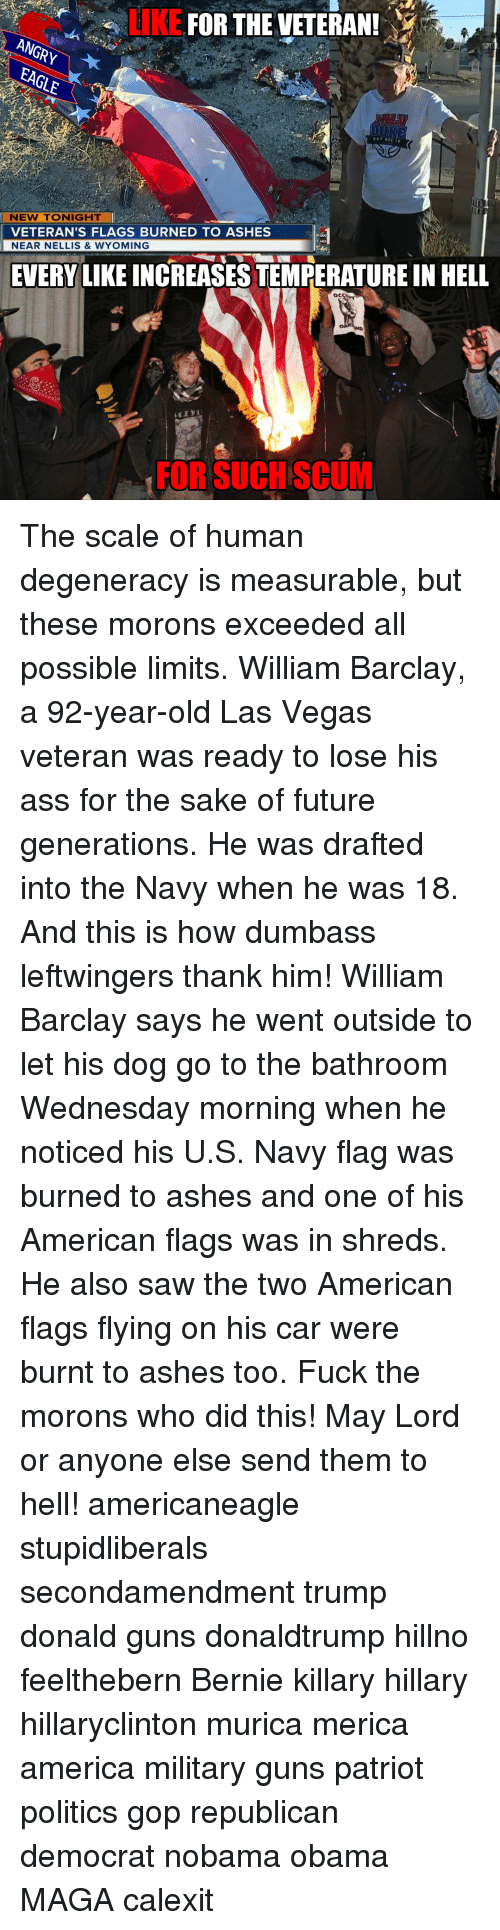 Hillno: LIKE  FOR THE VETERAN!  ANGRy  NEW TONIGHT  VETERAN'S FLAGS BURNED TO ASHES  NEAR NELLIS & WYOMING  EVERY LIKE INCREASESTEMPERATURE IN HELL  OCI  FOR SUCH SCUM The scale of human degeneracy is measurable, but these morons exceeded all possible limits. William Barclay, a 92-year-old Las Vegas veteran was ready to lose his ass for the sake of future generations. He was drafted into the Navy when he was 18. And this is how dumbass leftwingers thank him! William Barclay says he went outside to let his dog go to the bathroom Wednesday morning when he noticed his U.S. Navy flag was burned to ashes and one of his American flags was in shreds. He also saw the two American flags flying on his car were burnt to ashes too. Fuck the morons who did this! May Lord or anyone else send them to hell! americaneagle stupidliberals secondamendment trump donald guns donaldtrump hillno feelthebern Bernie killary hillary hillaryclinton murica merica america military guns patriot politics gop republican democrat nobama obama MAGA calexit